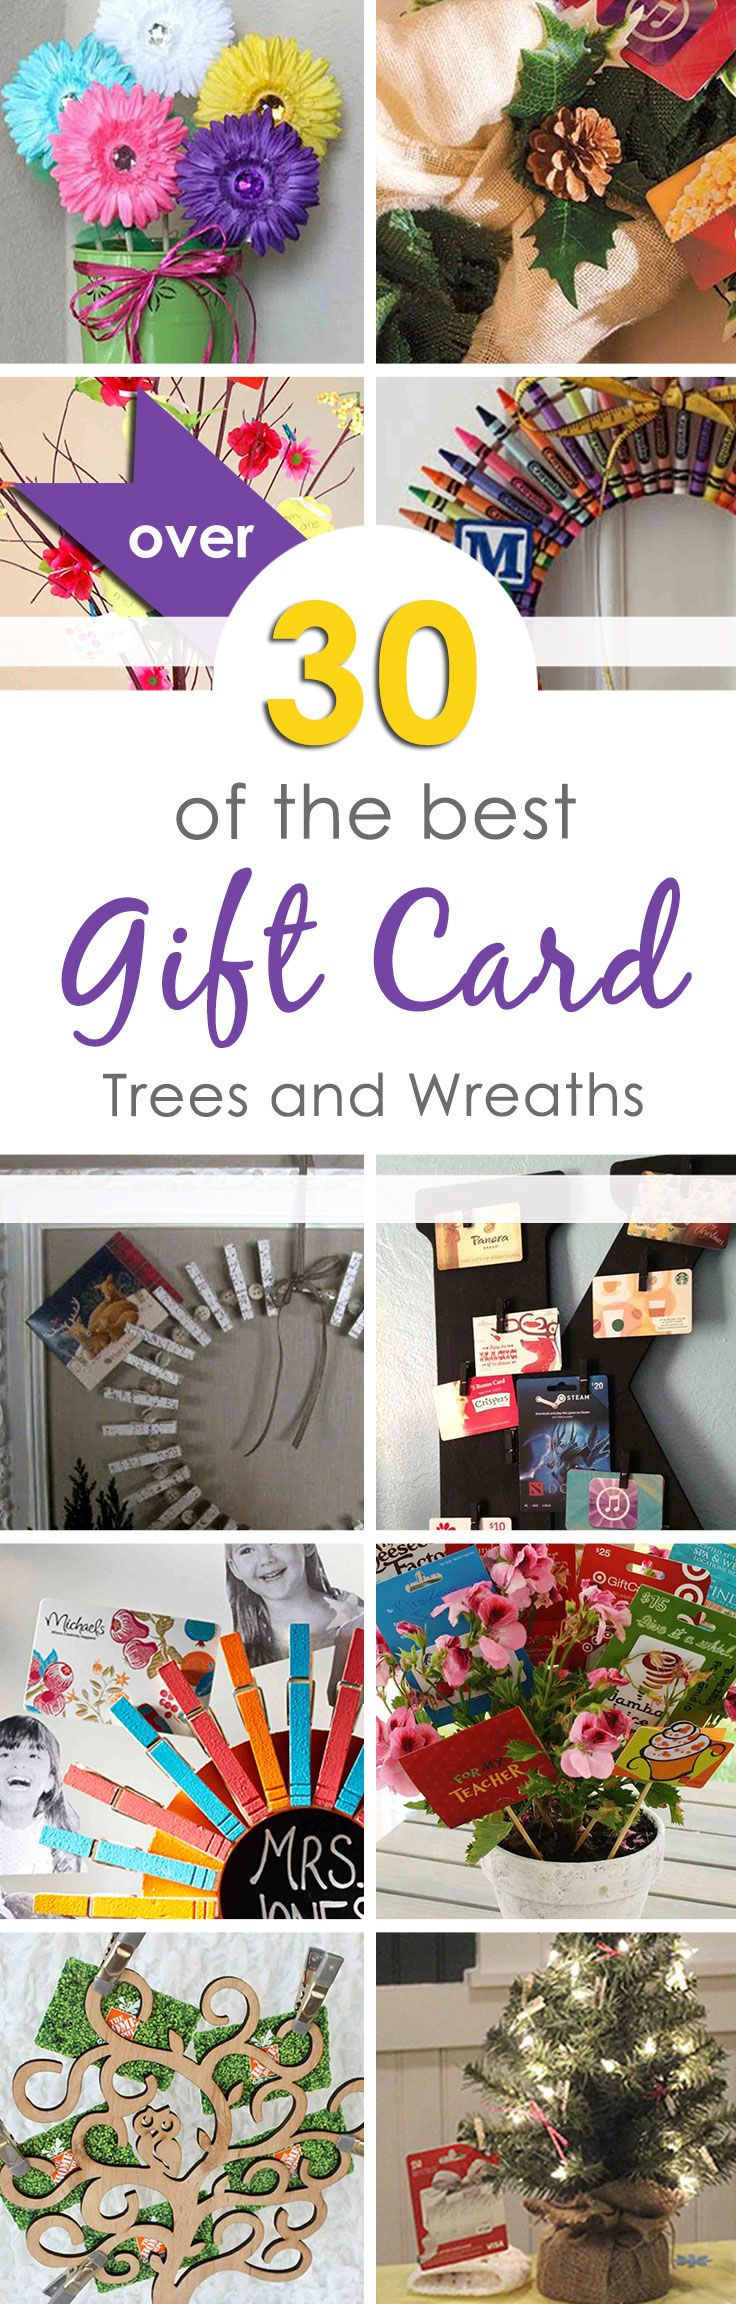 Gift card tree ideas pinterest - Over 30 Of The Best Gift Card Trees And Gift Card Wreaths I Could Find